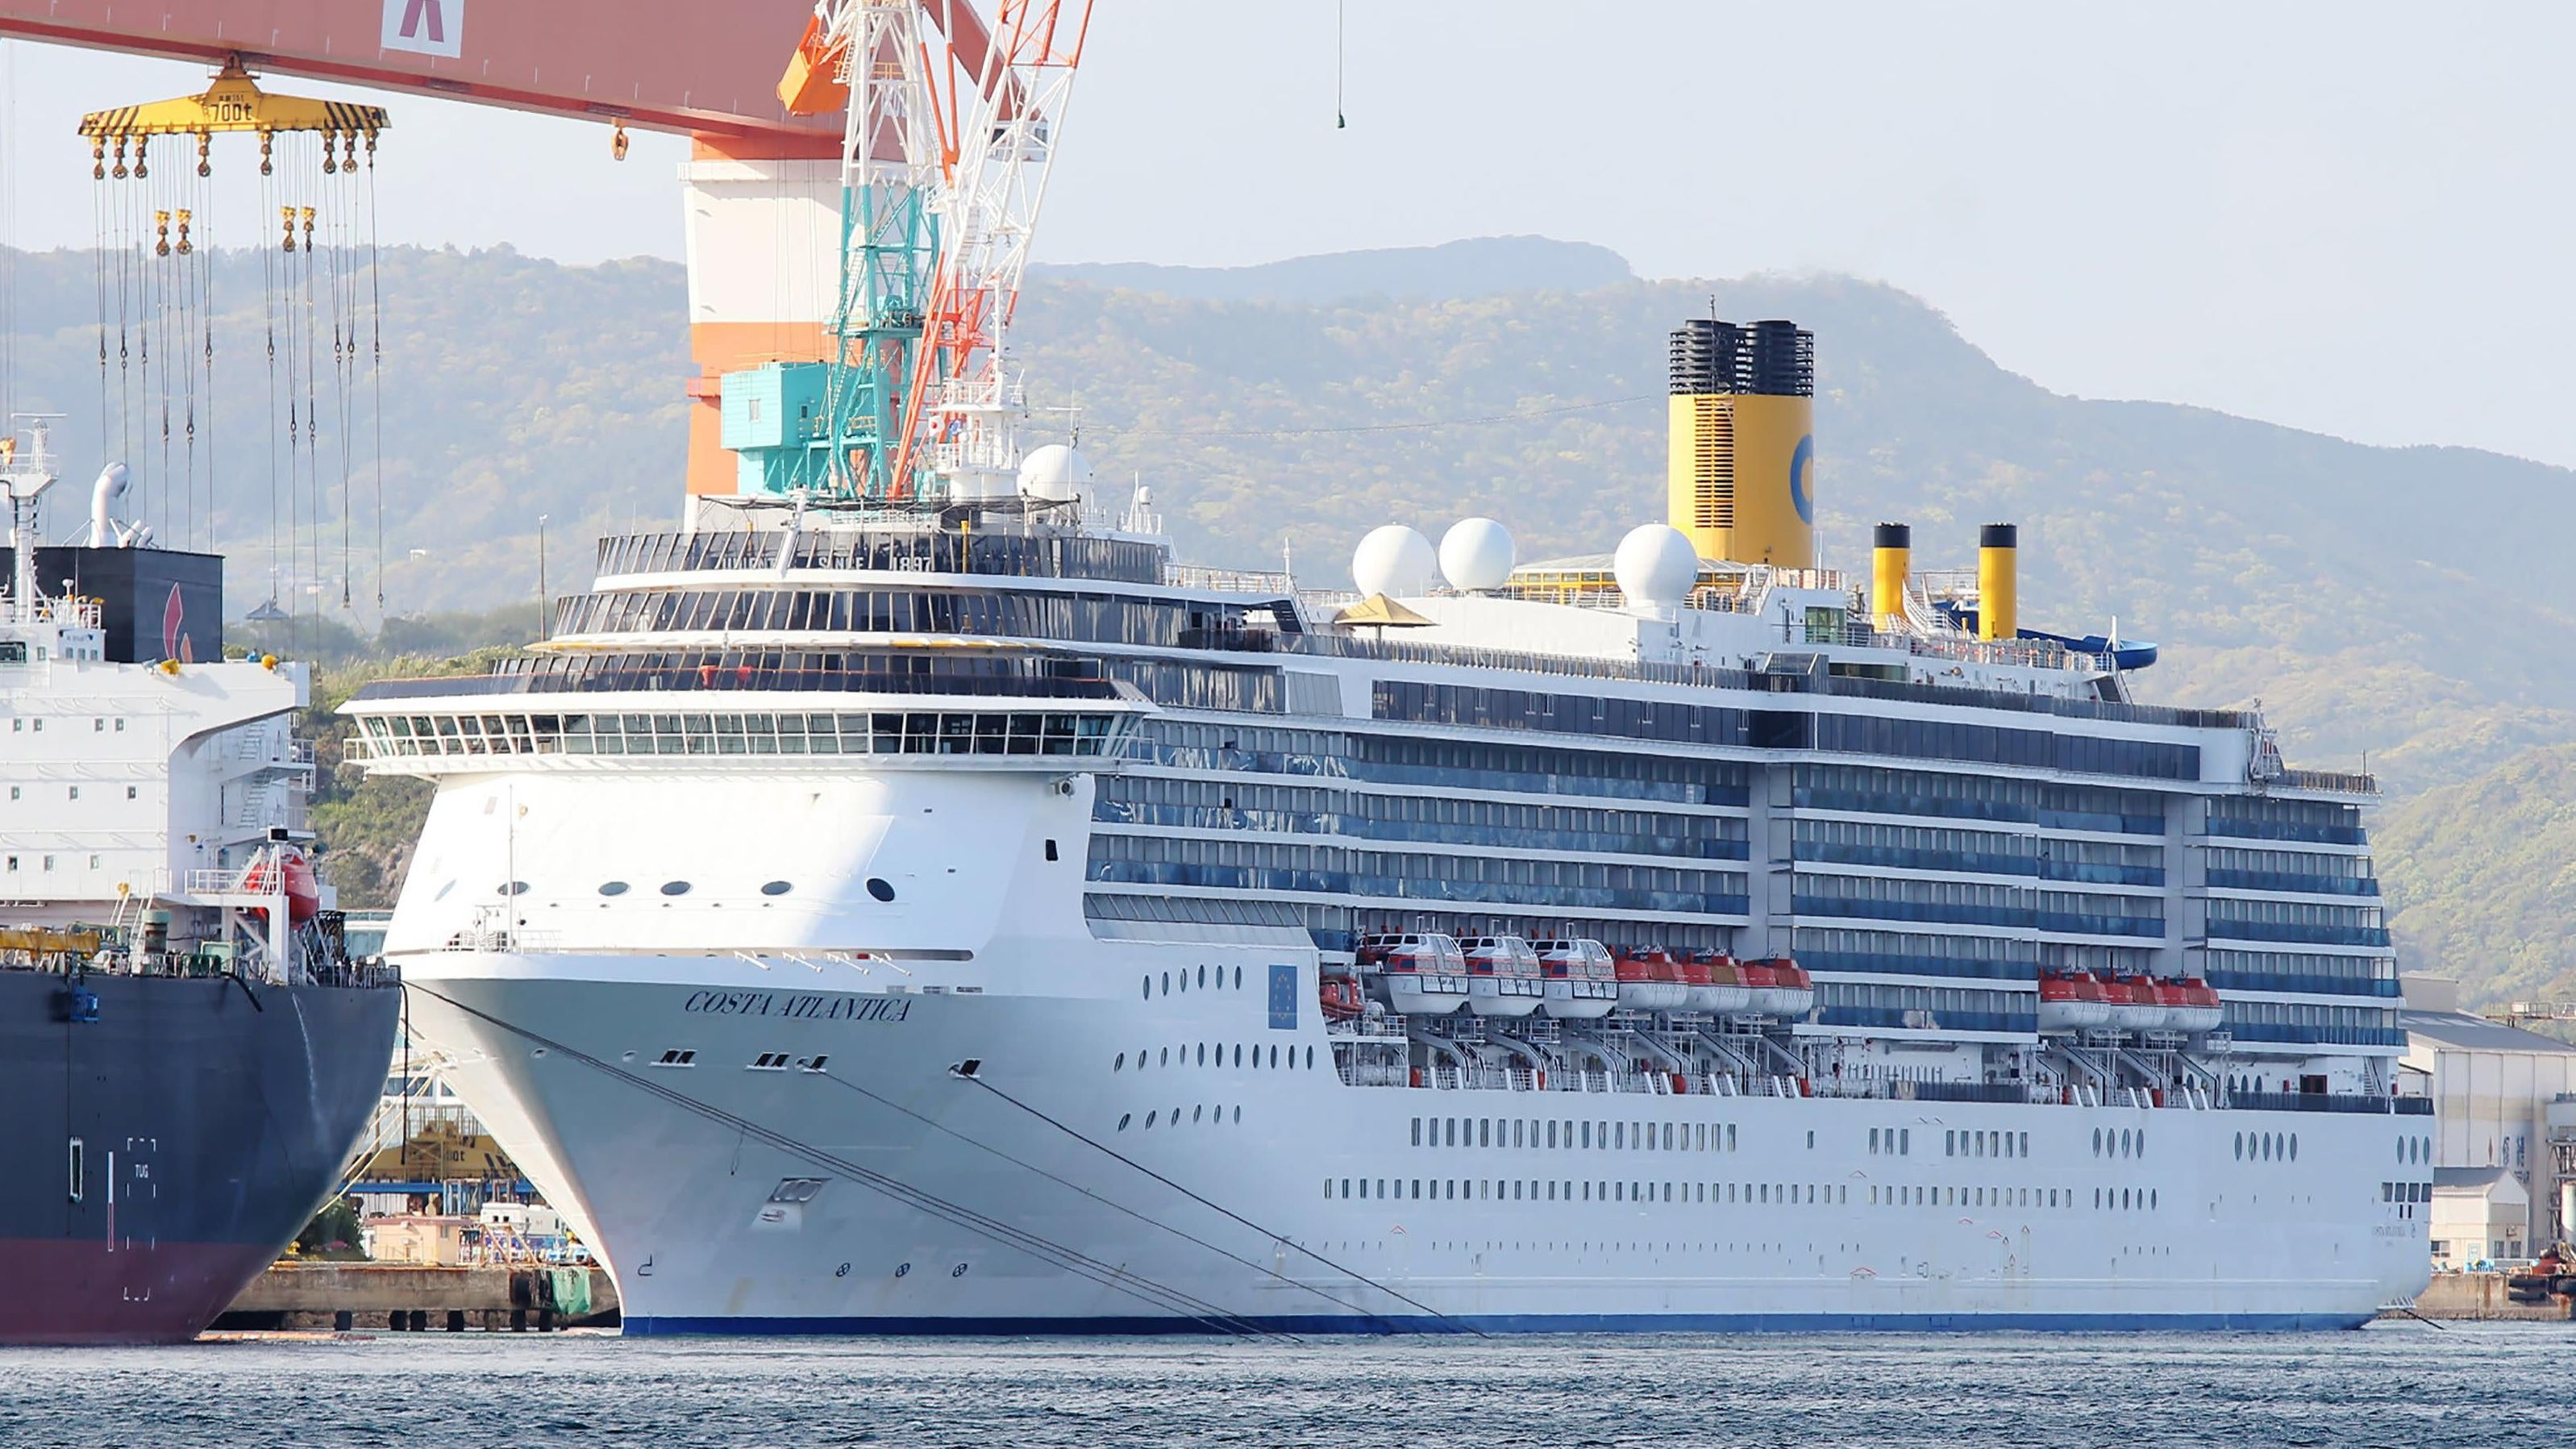 148 Crew Members Test Positive For Coronavirus On Cruise Ship Docked In Japan